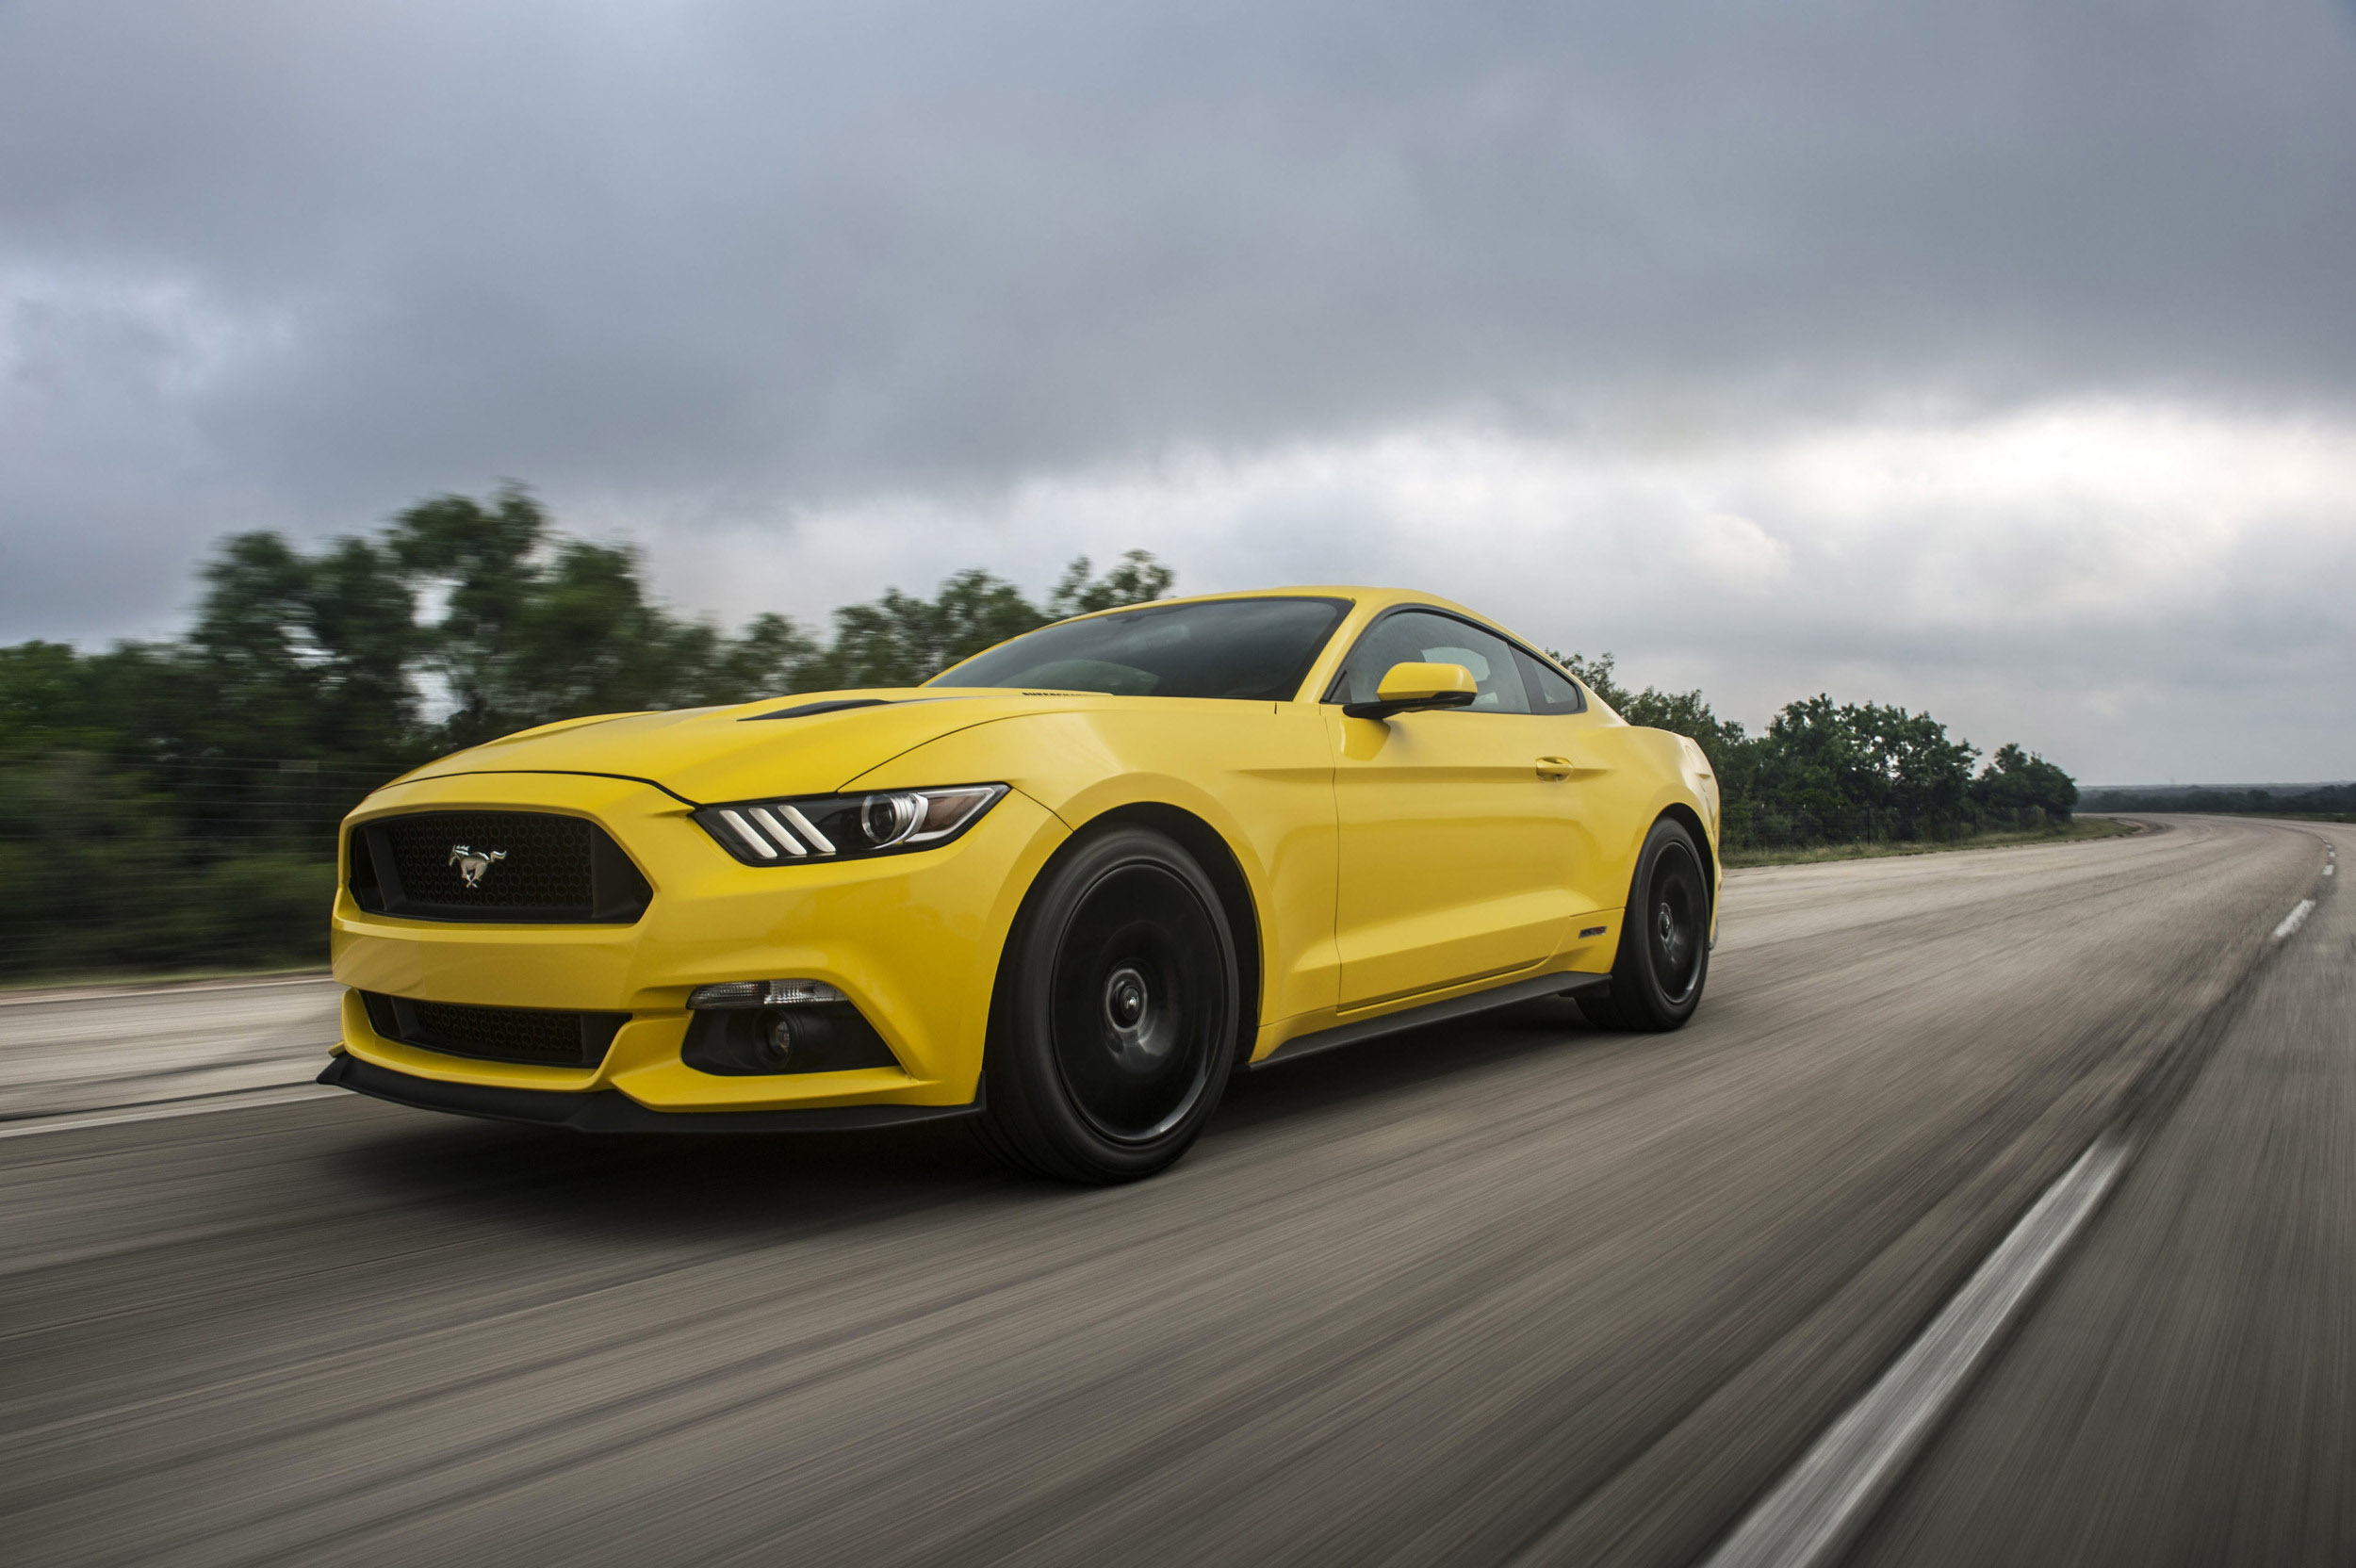 hennessey ford mustang gt makes top speed record hitting 207 9 mph video. Black Bedroom Furniture Sets. Home Design Ideas